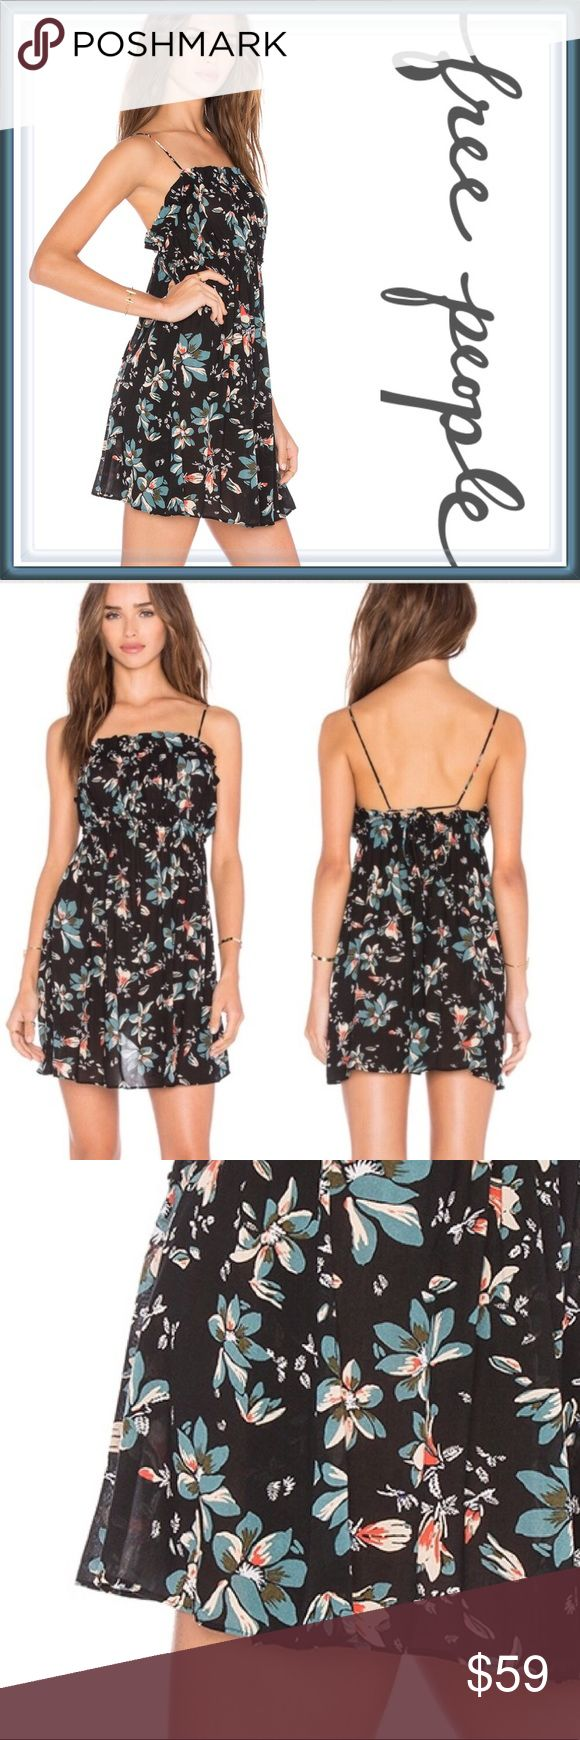 NWT Free People Floral Jolene Mini Slip Dress ➖NWT ➖BRAND: Free People   ➖SIZE: Small ➖STYLE: Jolene Printed Mini Dress in the black combo. The dress has a straight elasticized neck and empire waist, a ruffled hem, scoop back and is pullover style. The straps are adjustable but not in the traditional way. They loop through two holes in the back. The photos show it more clearly.  ➖MATERIAL : 100% Rayon   ❌ NO TRADE   Floral Homecoming prom short tank top Slip dress sexy club blue…